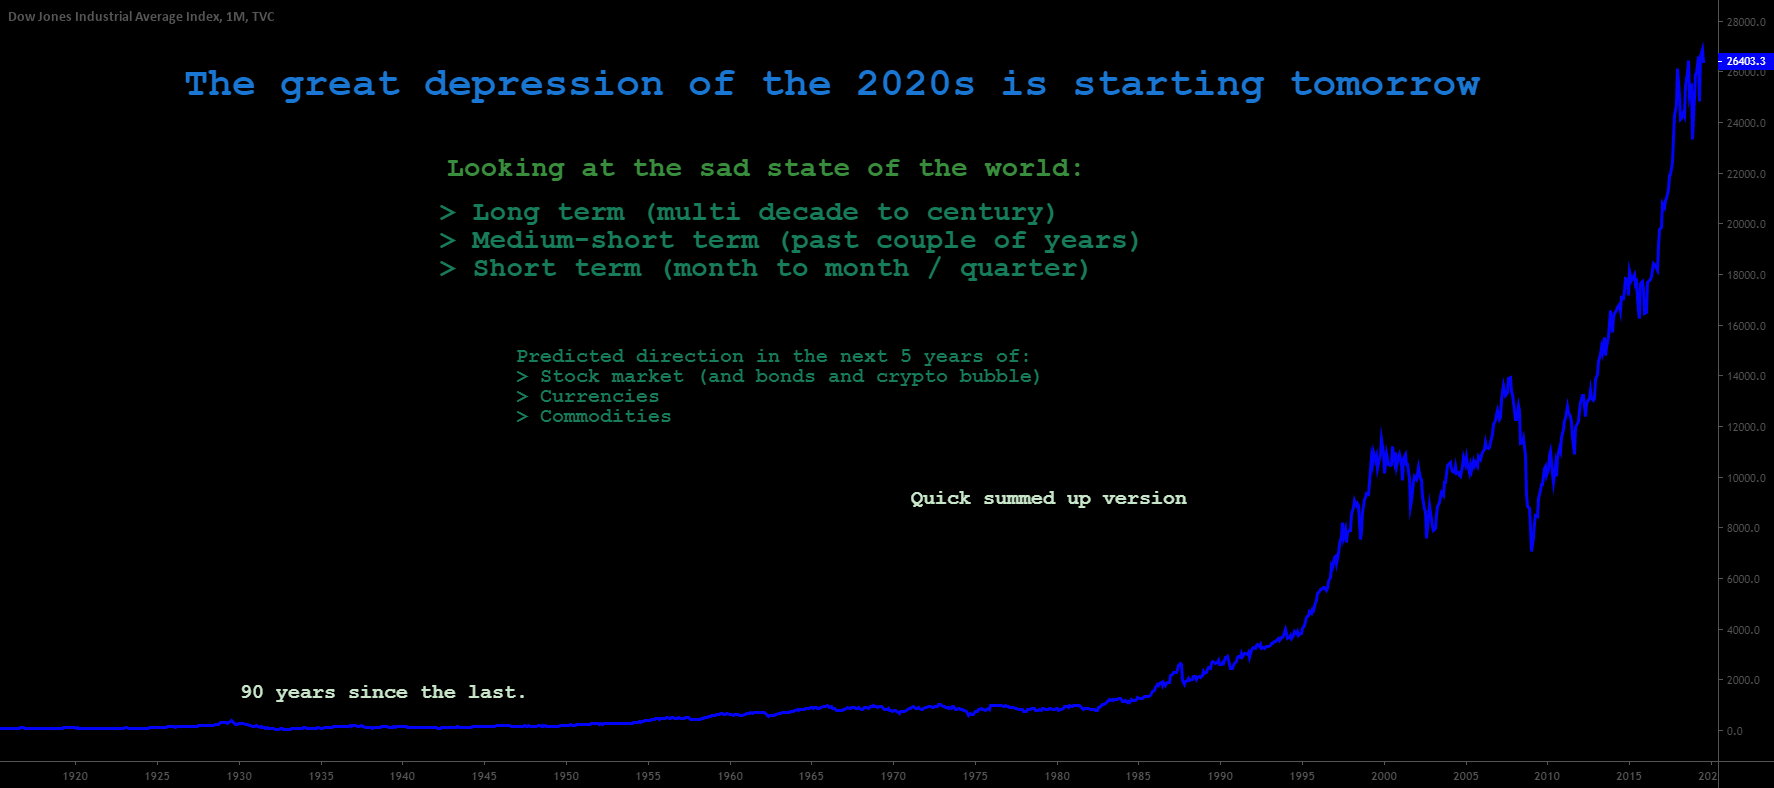 Welcome to the great depression of the 2020s  It is starting